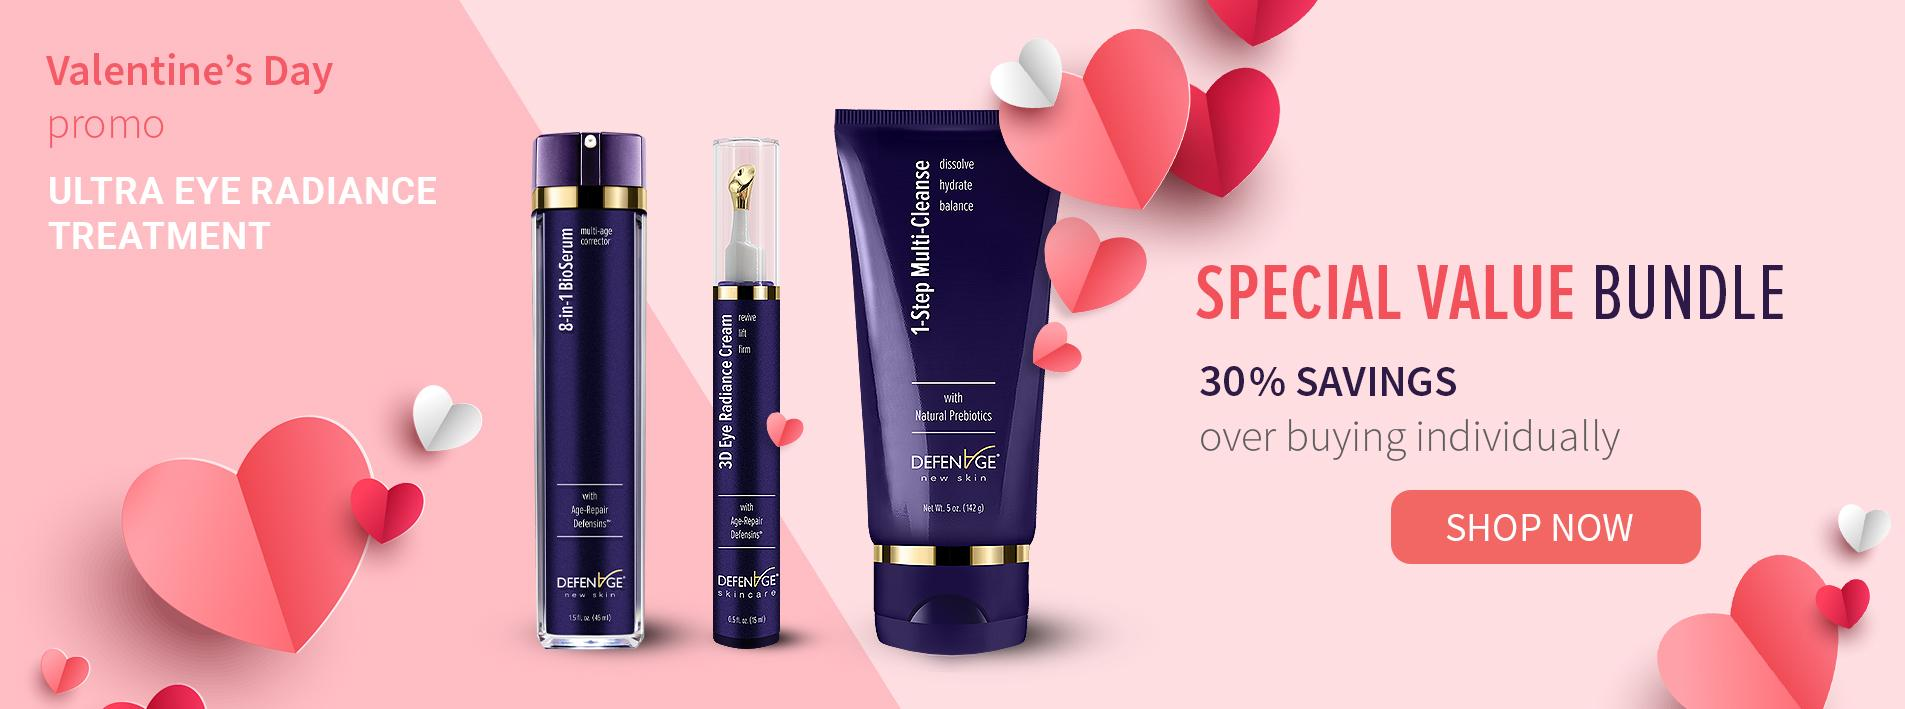 Ultra Eye Radiance Treatment for Valentine's Day